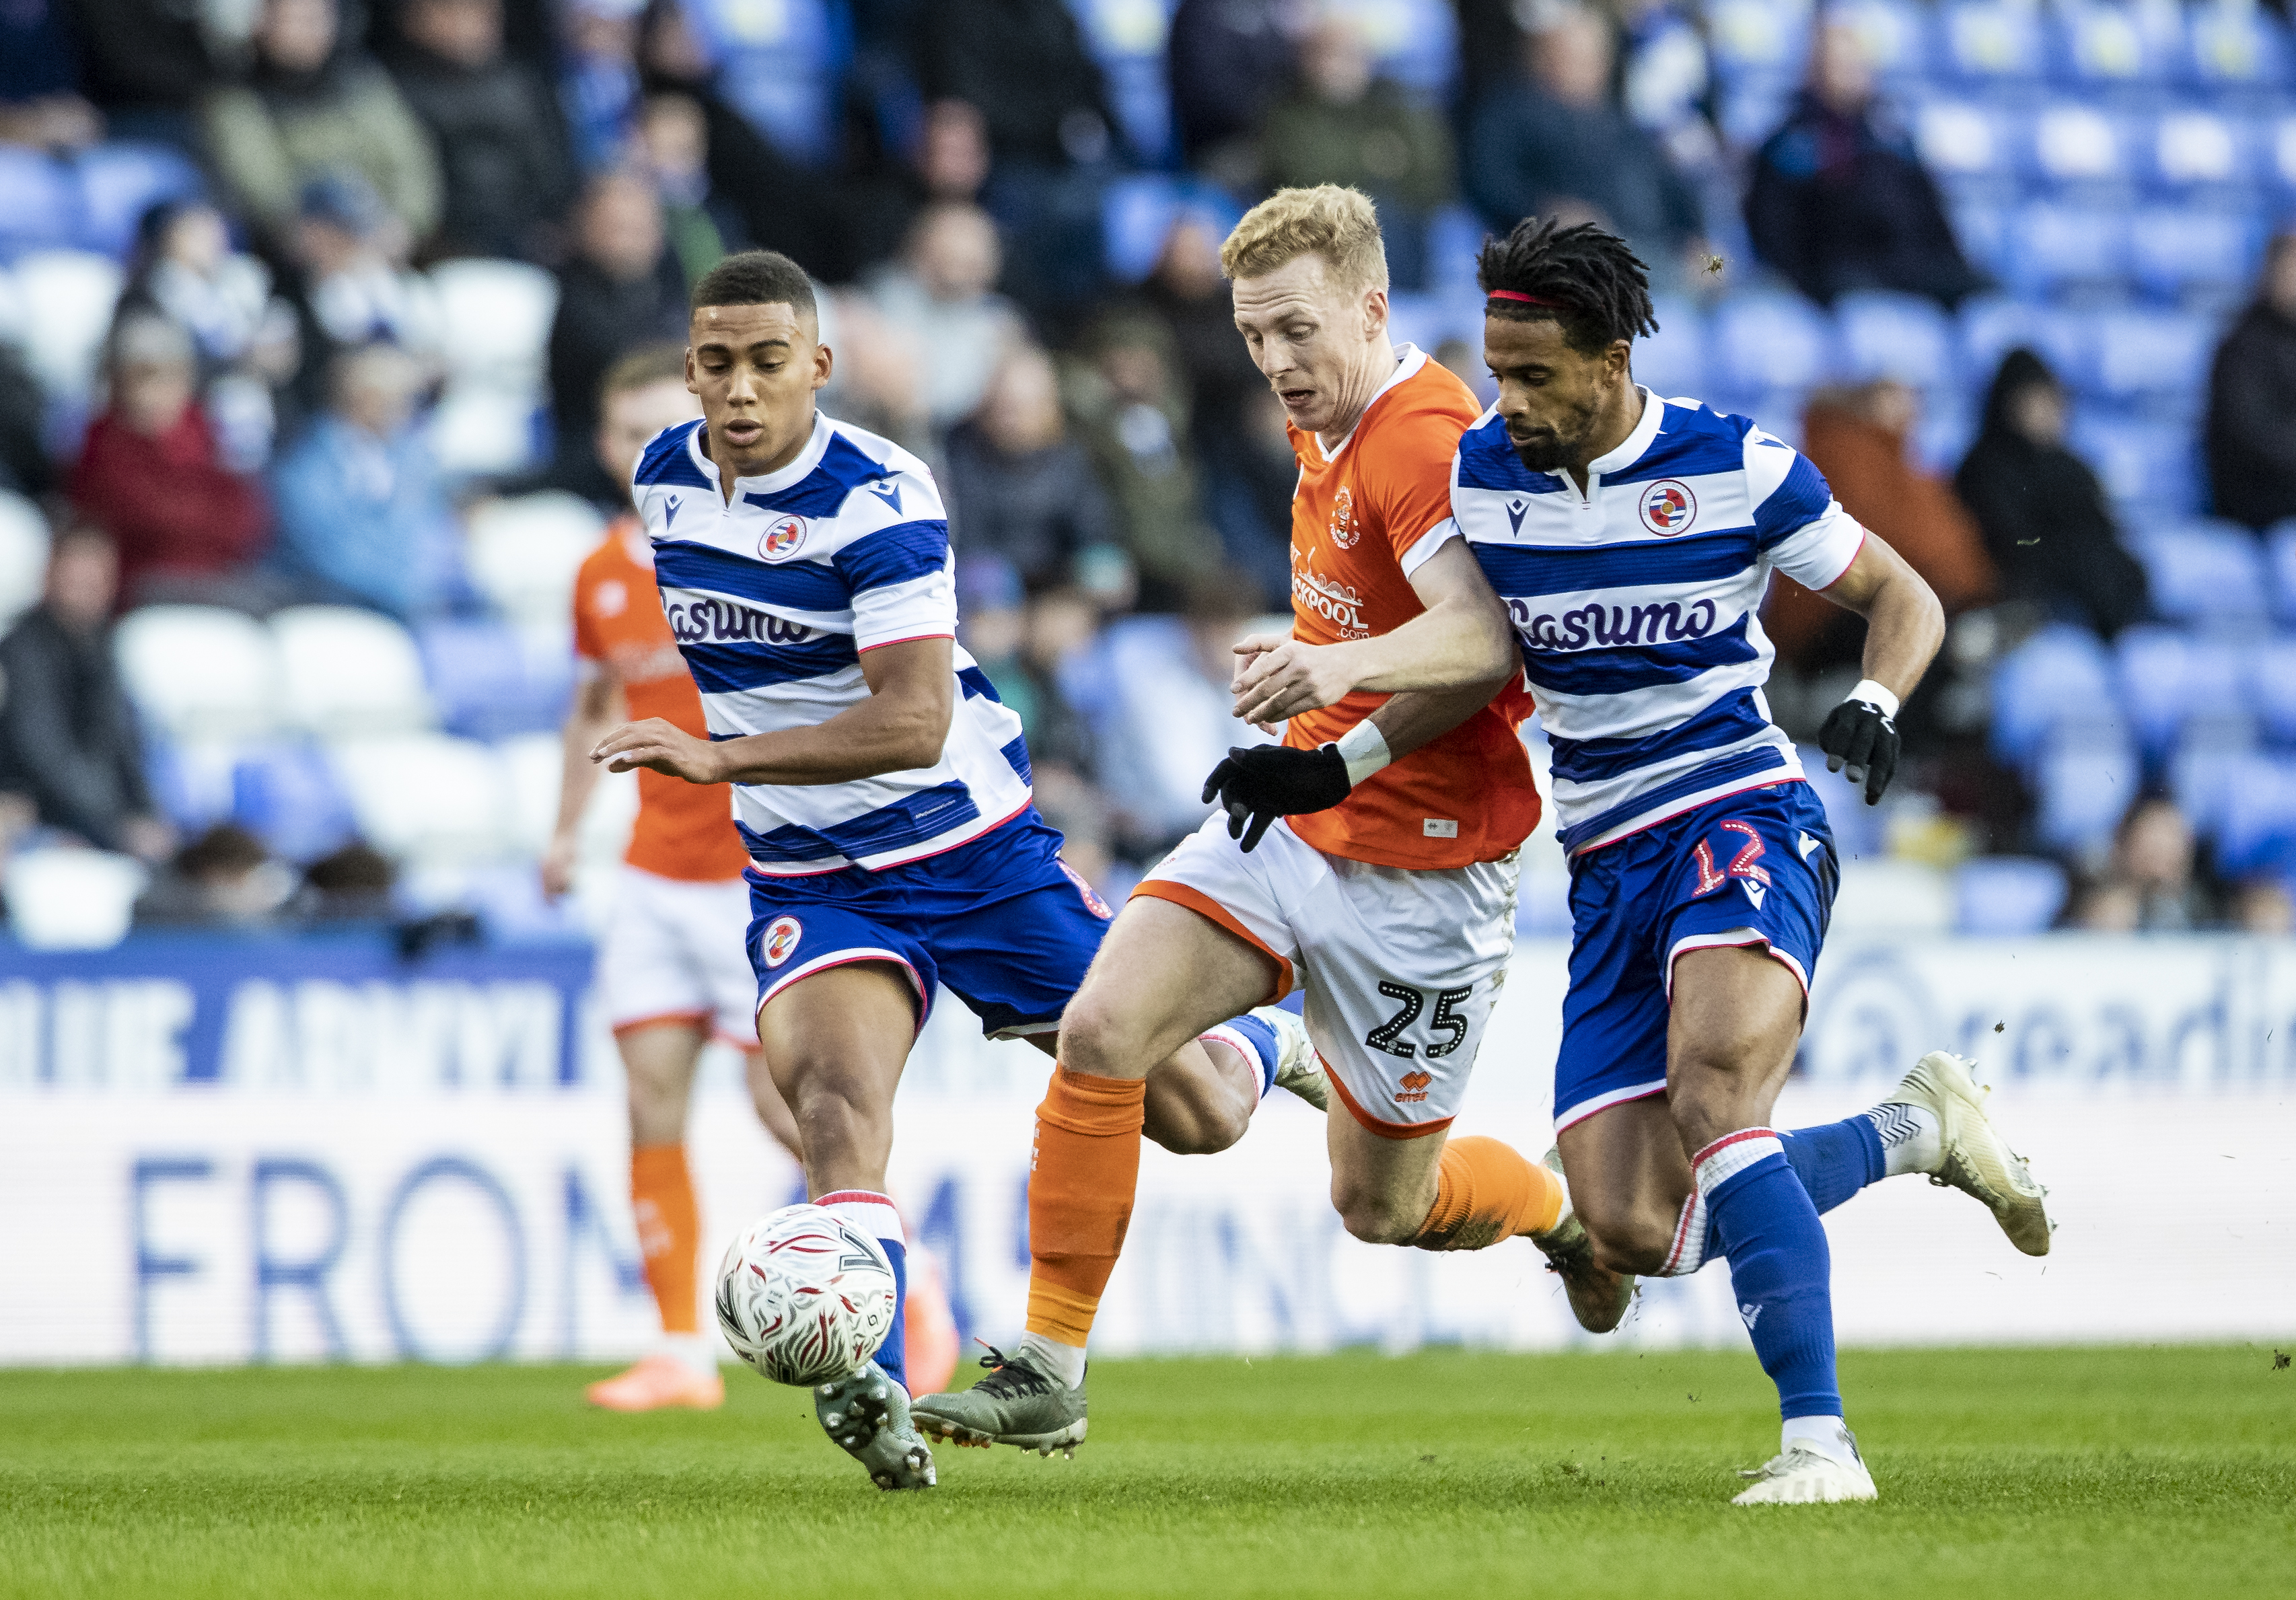 Reading FC v Blackpool FC - FA Cup Third Round